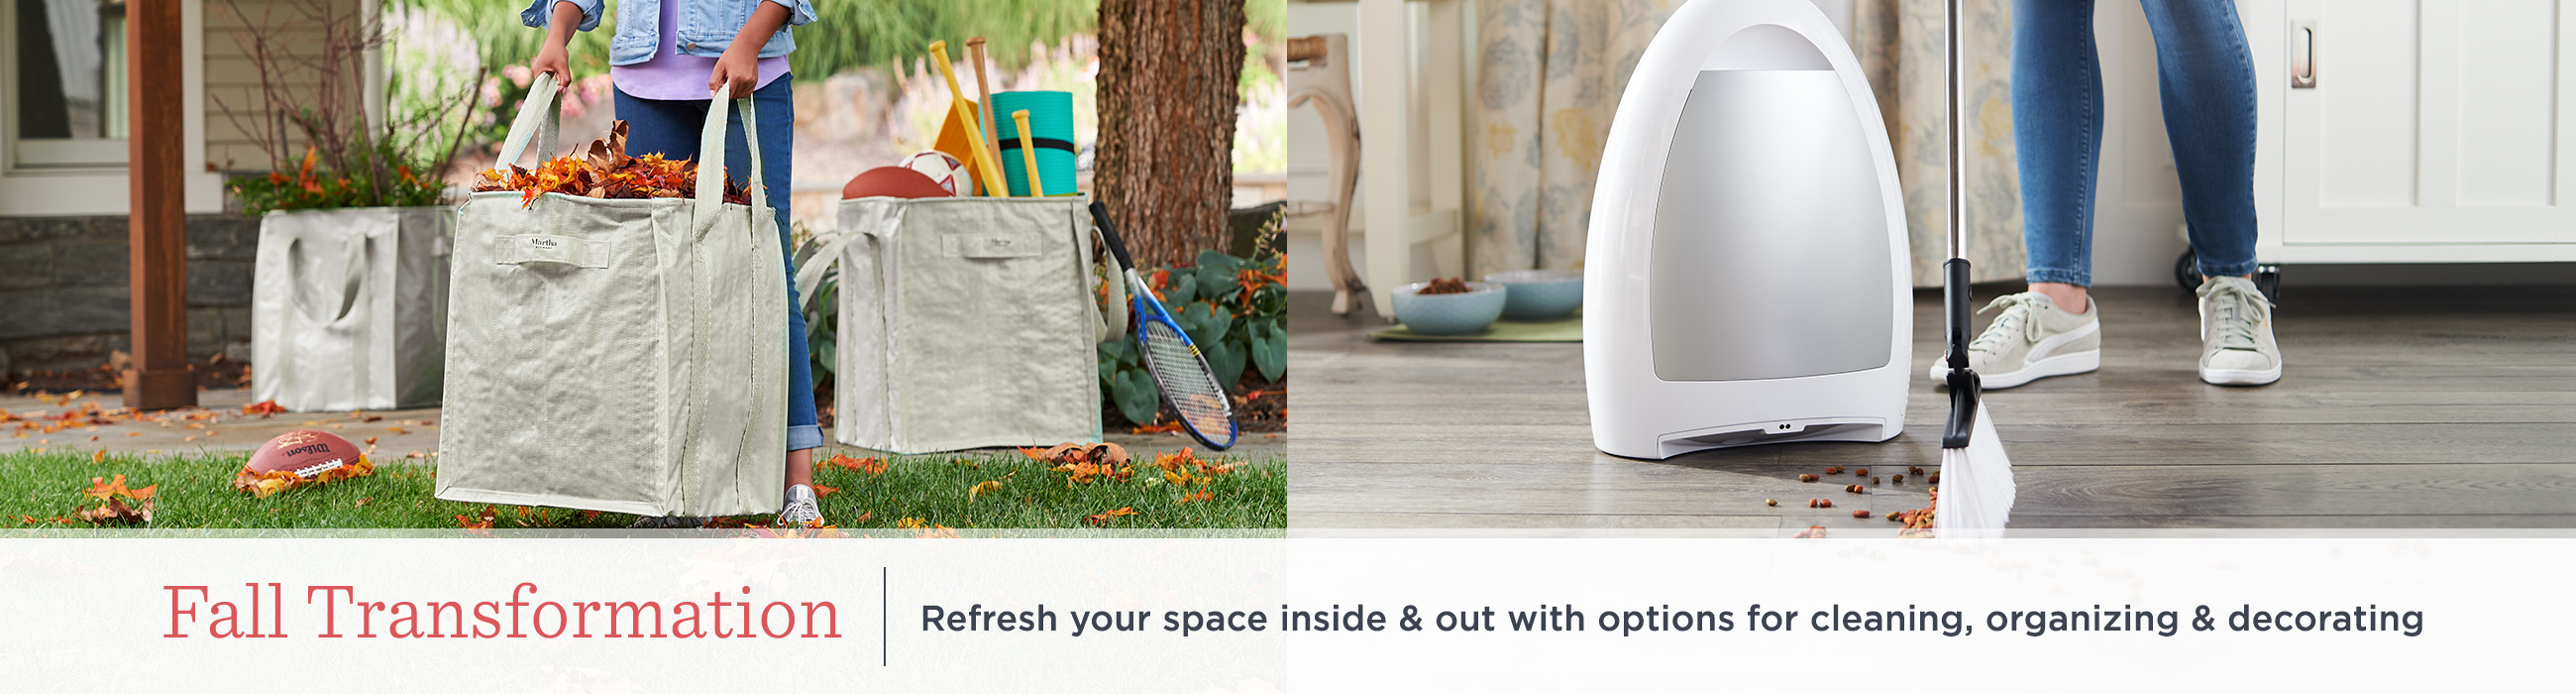 Fall Transformation - Refresh your space inside & out with options for cleaning, organizing & decorating